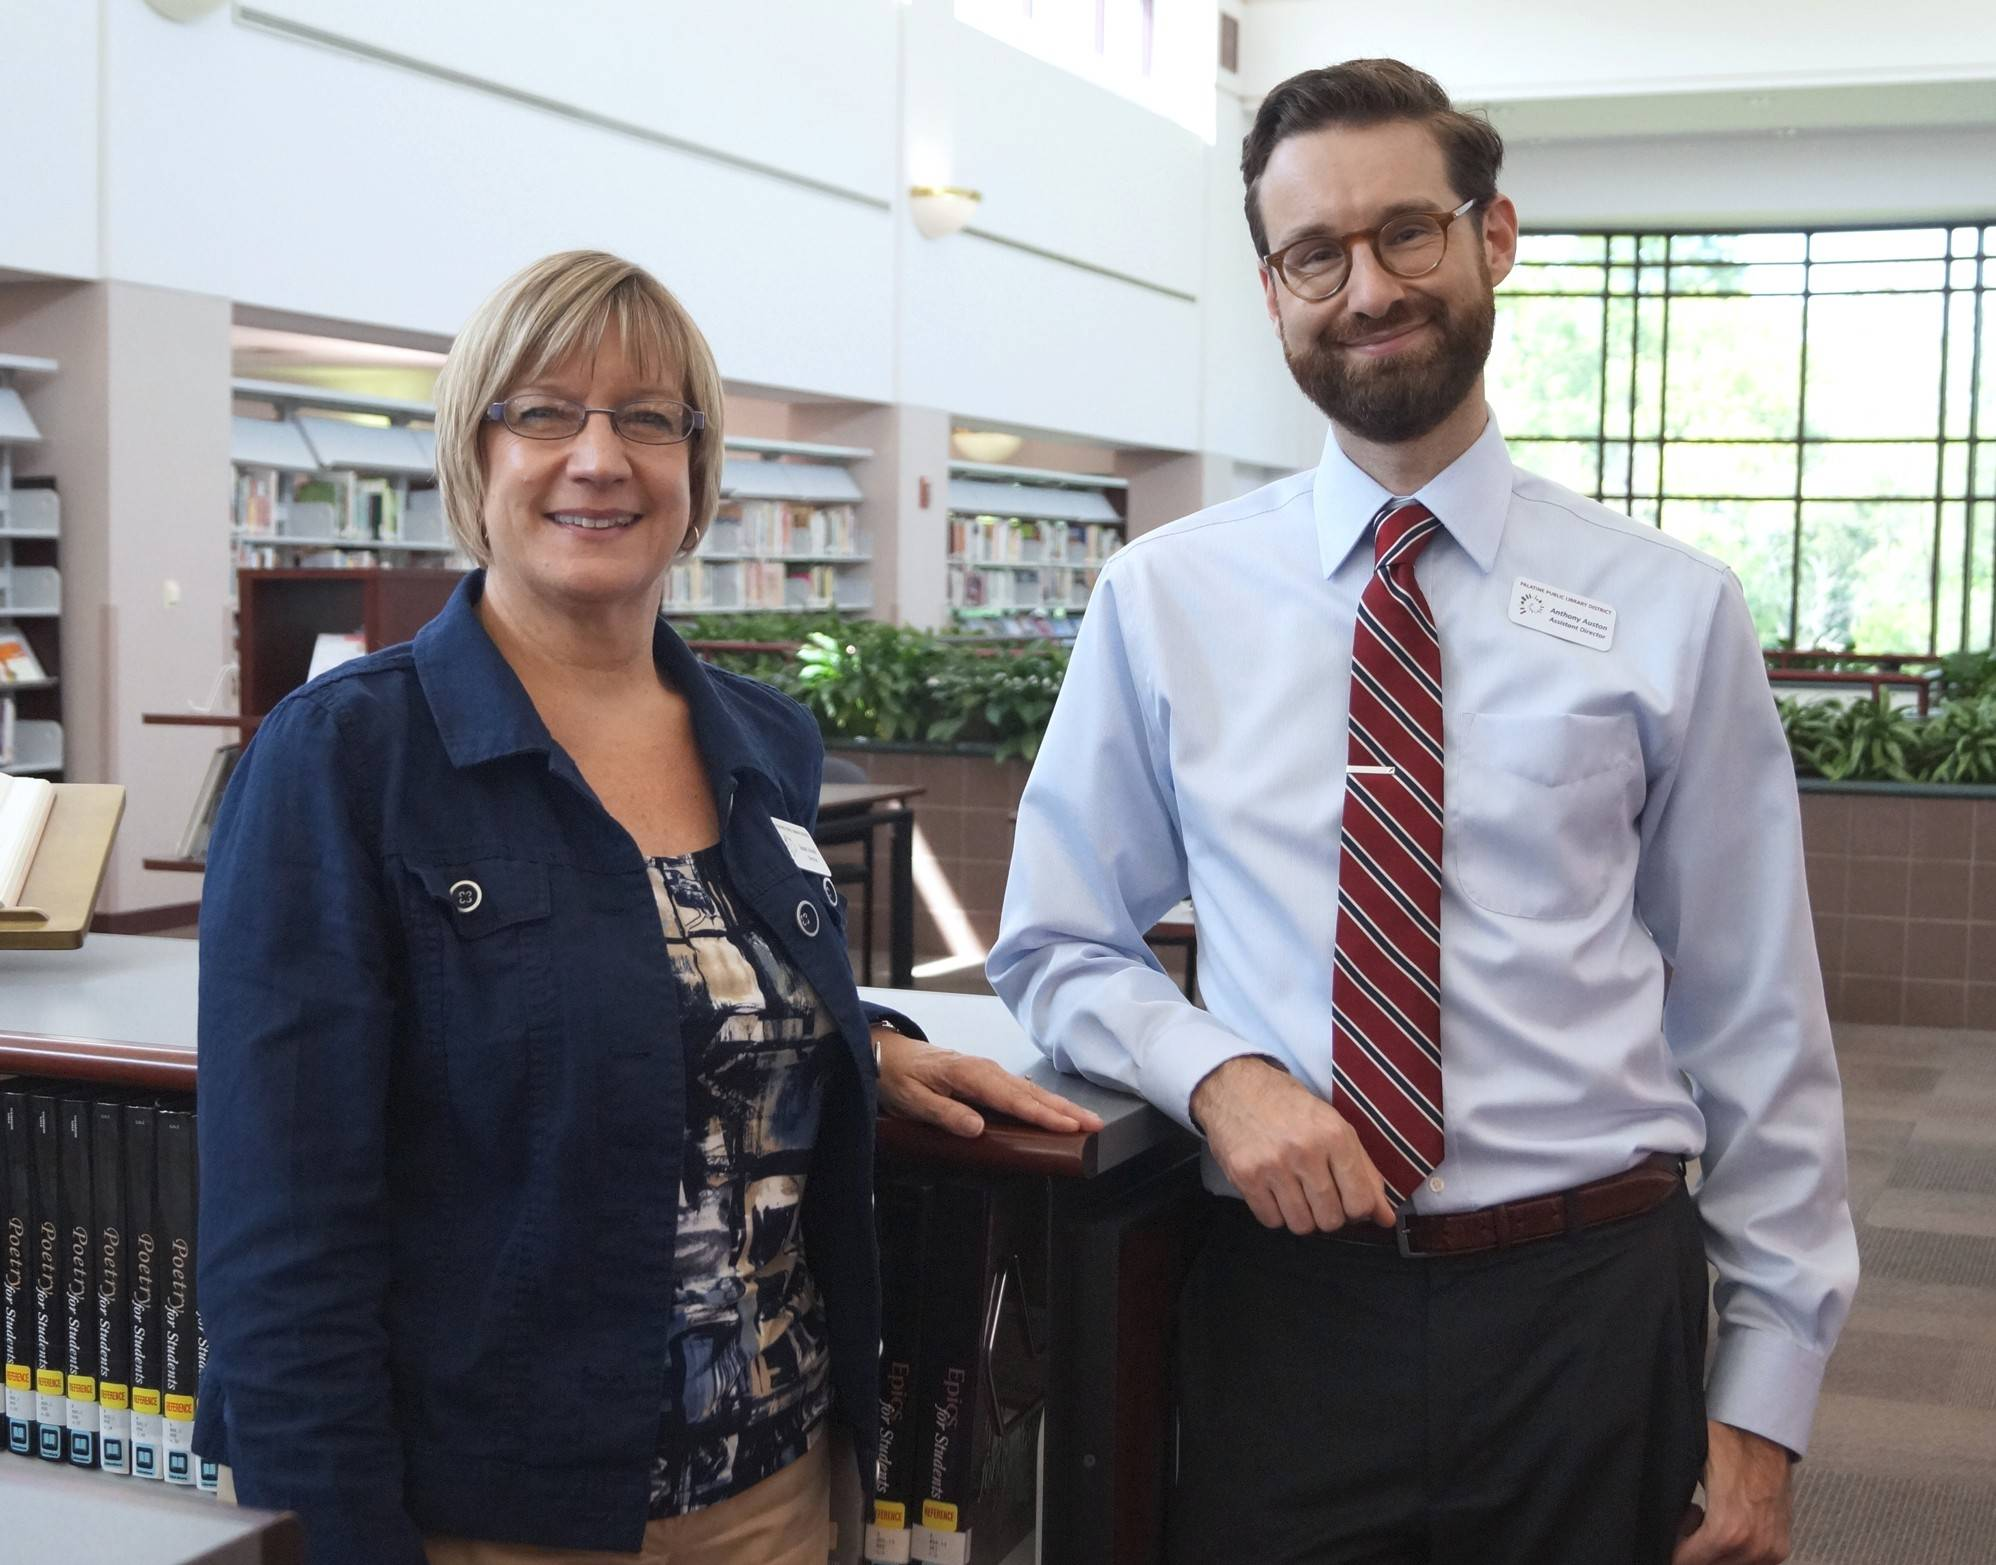 Anthony Auston, right, replaced Susan Strunk as Palatine Public Library District director in August 2014. He's leaving Palatine to become executive deputy director of Mount Prospect Public Library.